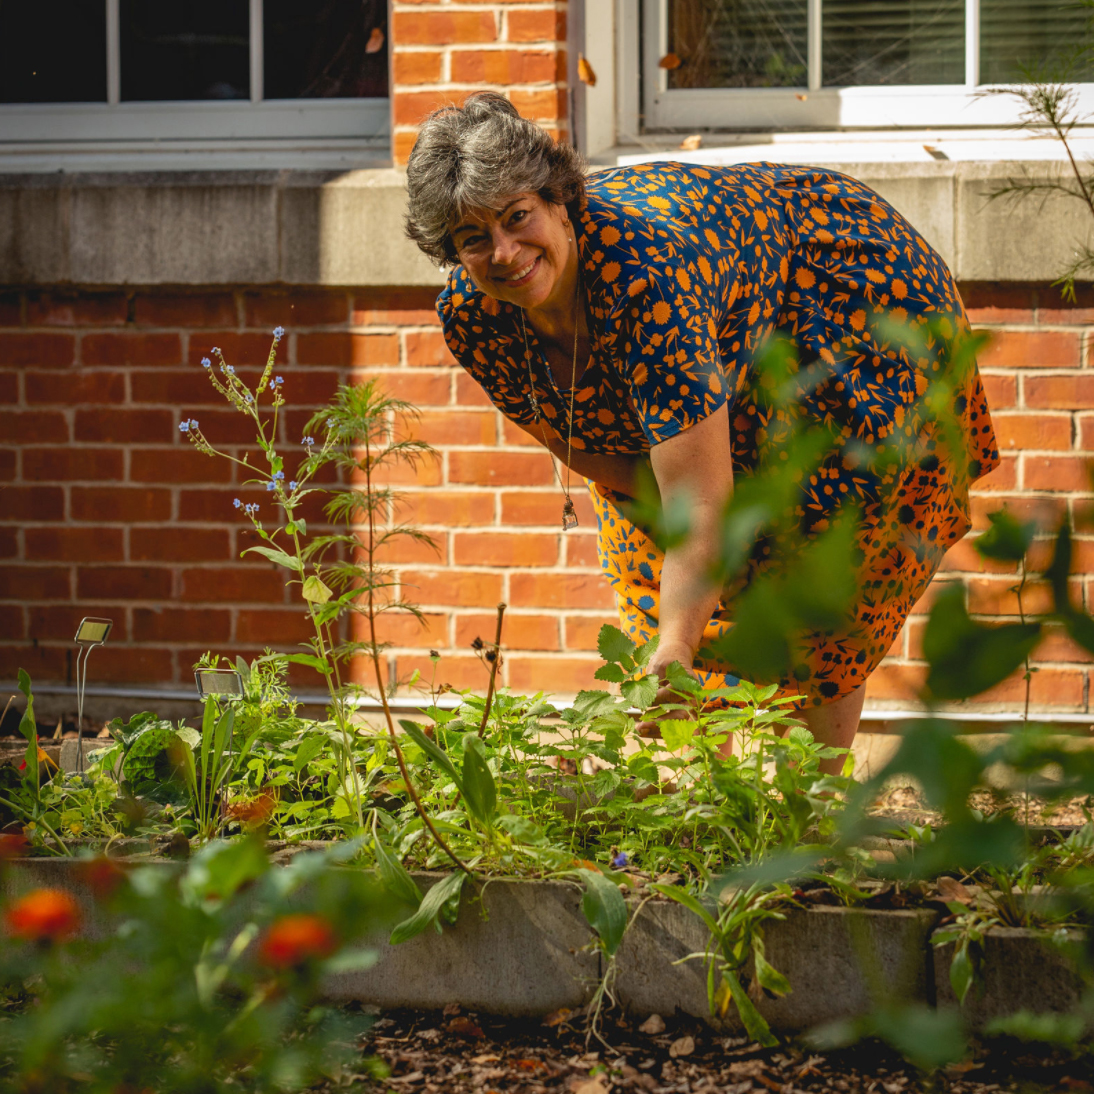 Woman plants tomatoes at her local Victory Garden in New Britain Connecticut in partnership with New Britain Roots